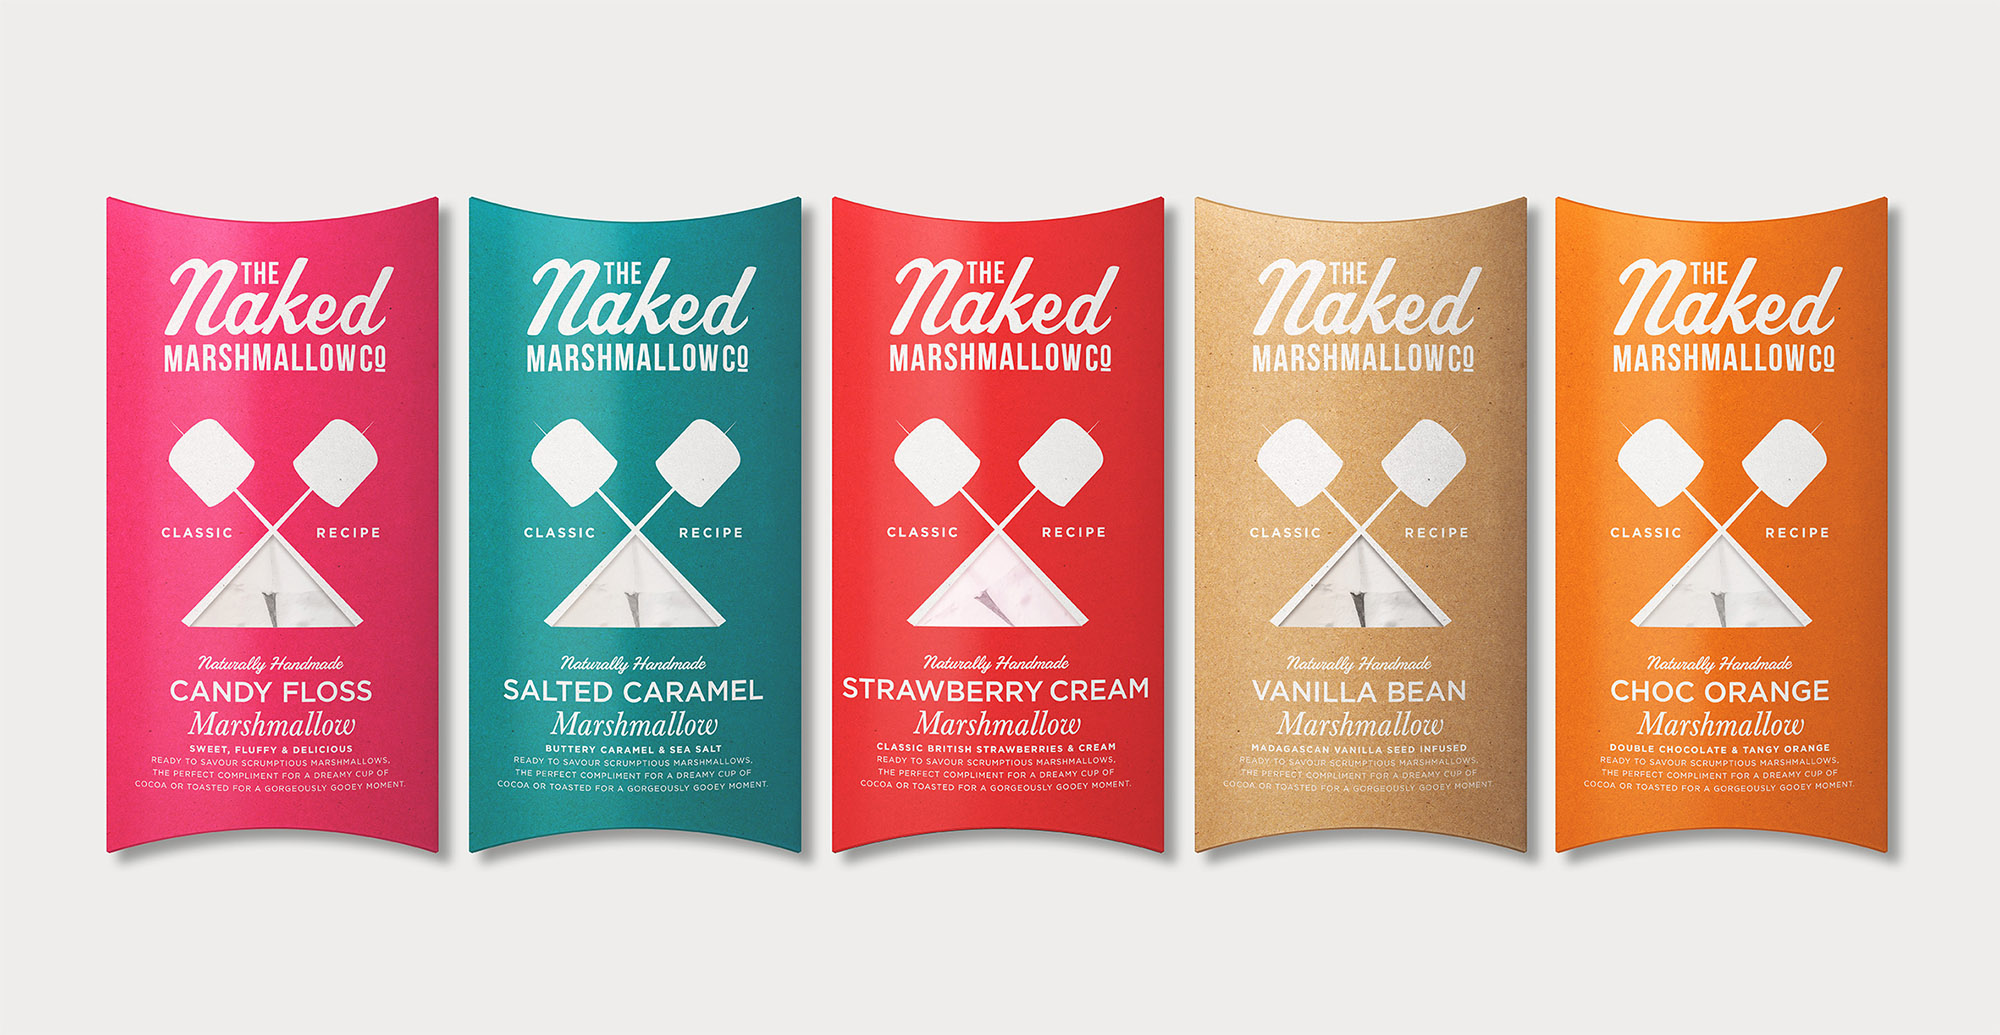 Branding and packaging design for confectionary brand The Naked Marshmallow Co by Design Happy London - packaging Range